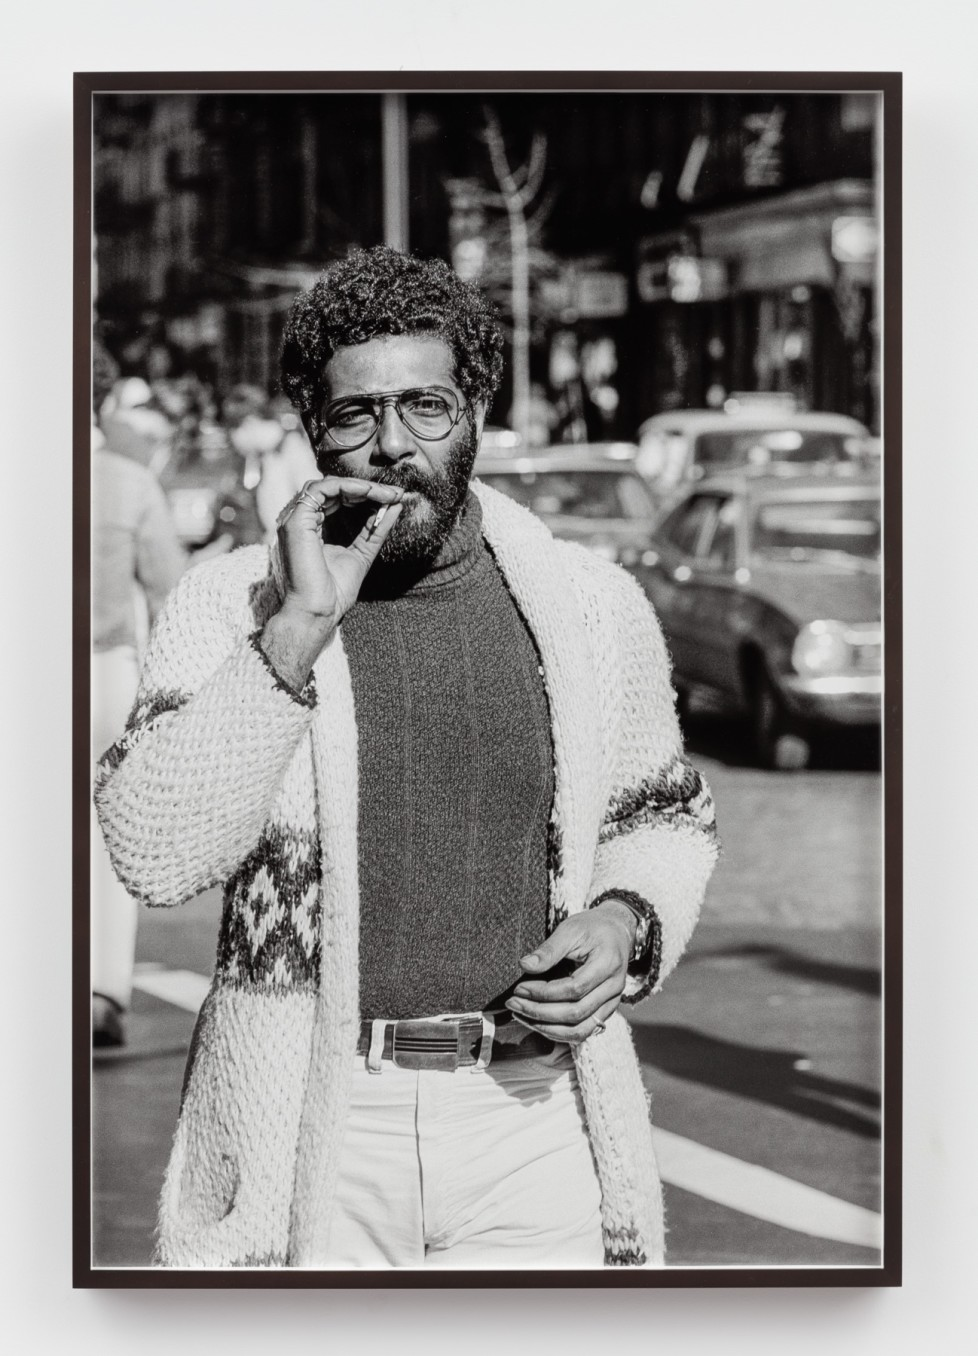 Sunil Gupta, Untitled #59 from the series Christopher Street, 1976/2019, Silver gelatin print, 91.5 x 61.6 cm, 36 1/8 x 24 1/4 in, Framed: 93.5 x 63.7 cm, 36 7/8 x 25 1/8 in, Edition of 5 plus 1 AP